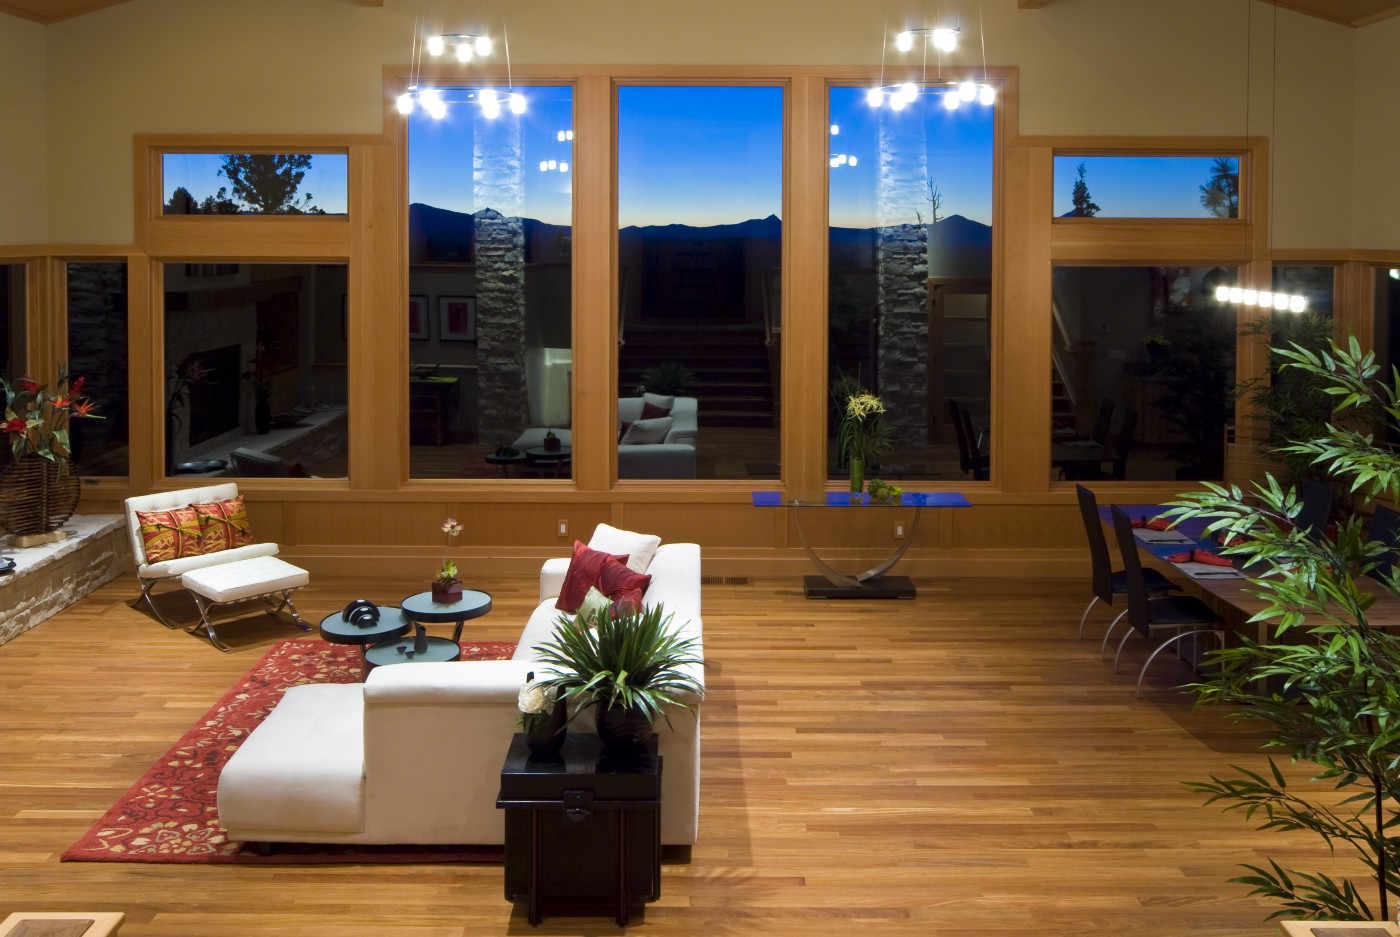 A clean and spacious living room with twilight view.